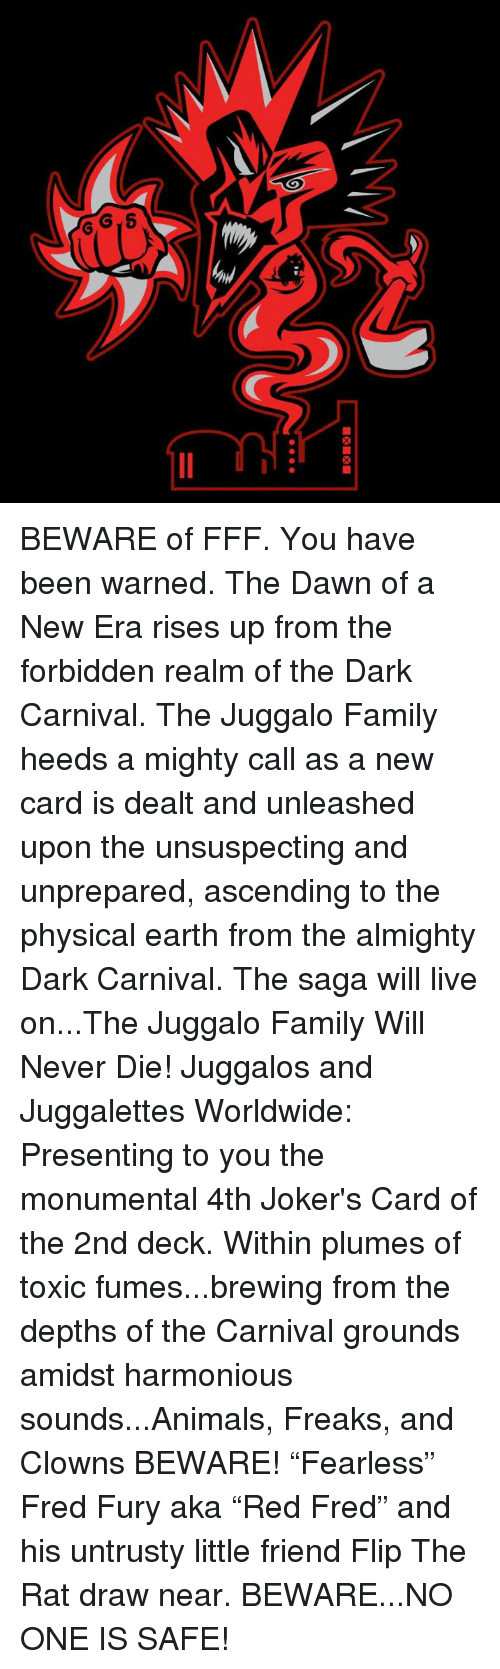 """Animals, Family, and Memes: BEWARE of FFF. You have been warned. The Dawn of a New Era rises up from the forbidden realm of the Dark Carnival. The Juggalo Family heeds a mighty call as a new card is dealt and unleashed upon the unsuspecting and unprepared, ascending to the physical earth from the almighty Dark Carnival. The saga will live on...The Juggalo Family Will Never Die! Juggalos and Juggalettes Worldwide: Presenting to you the monumental 4th Joker's Card of the 2nd deck. Within plumes of toxic fumes...brewing from the depths of the Carnival grounds amidst harmonious sounds...Animals, Freaks, and Clowns BEWARE! """"Fearless"""" Fred Fury aka """"Red Fred"""" and his untrusty little friend Flip The Rat draw near. BEWARE...NO ONE IS SAFE!"""